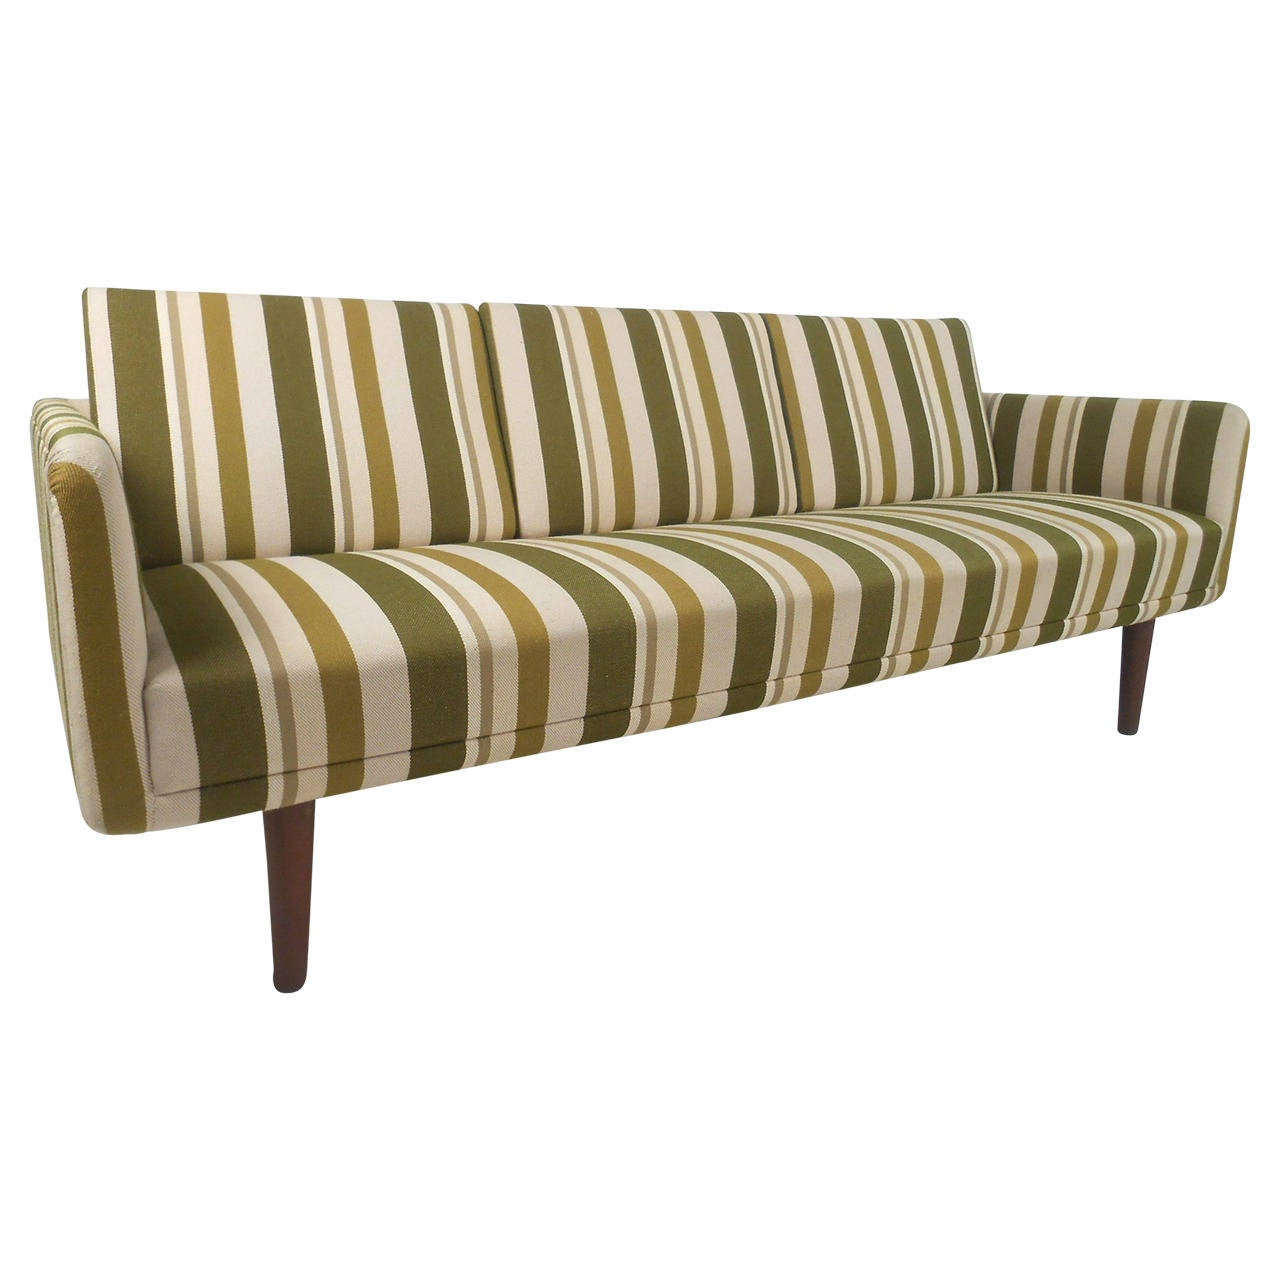 Large Danish Modern Sofa After Børge Mogensen For